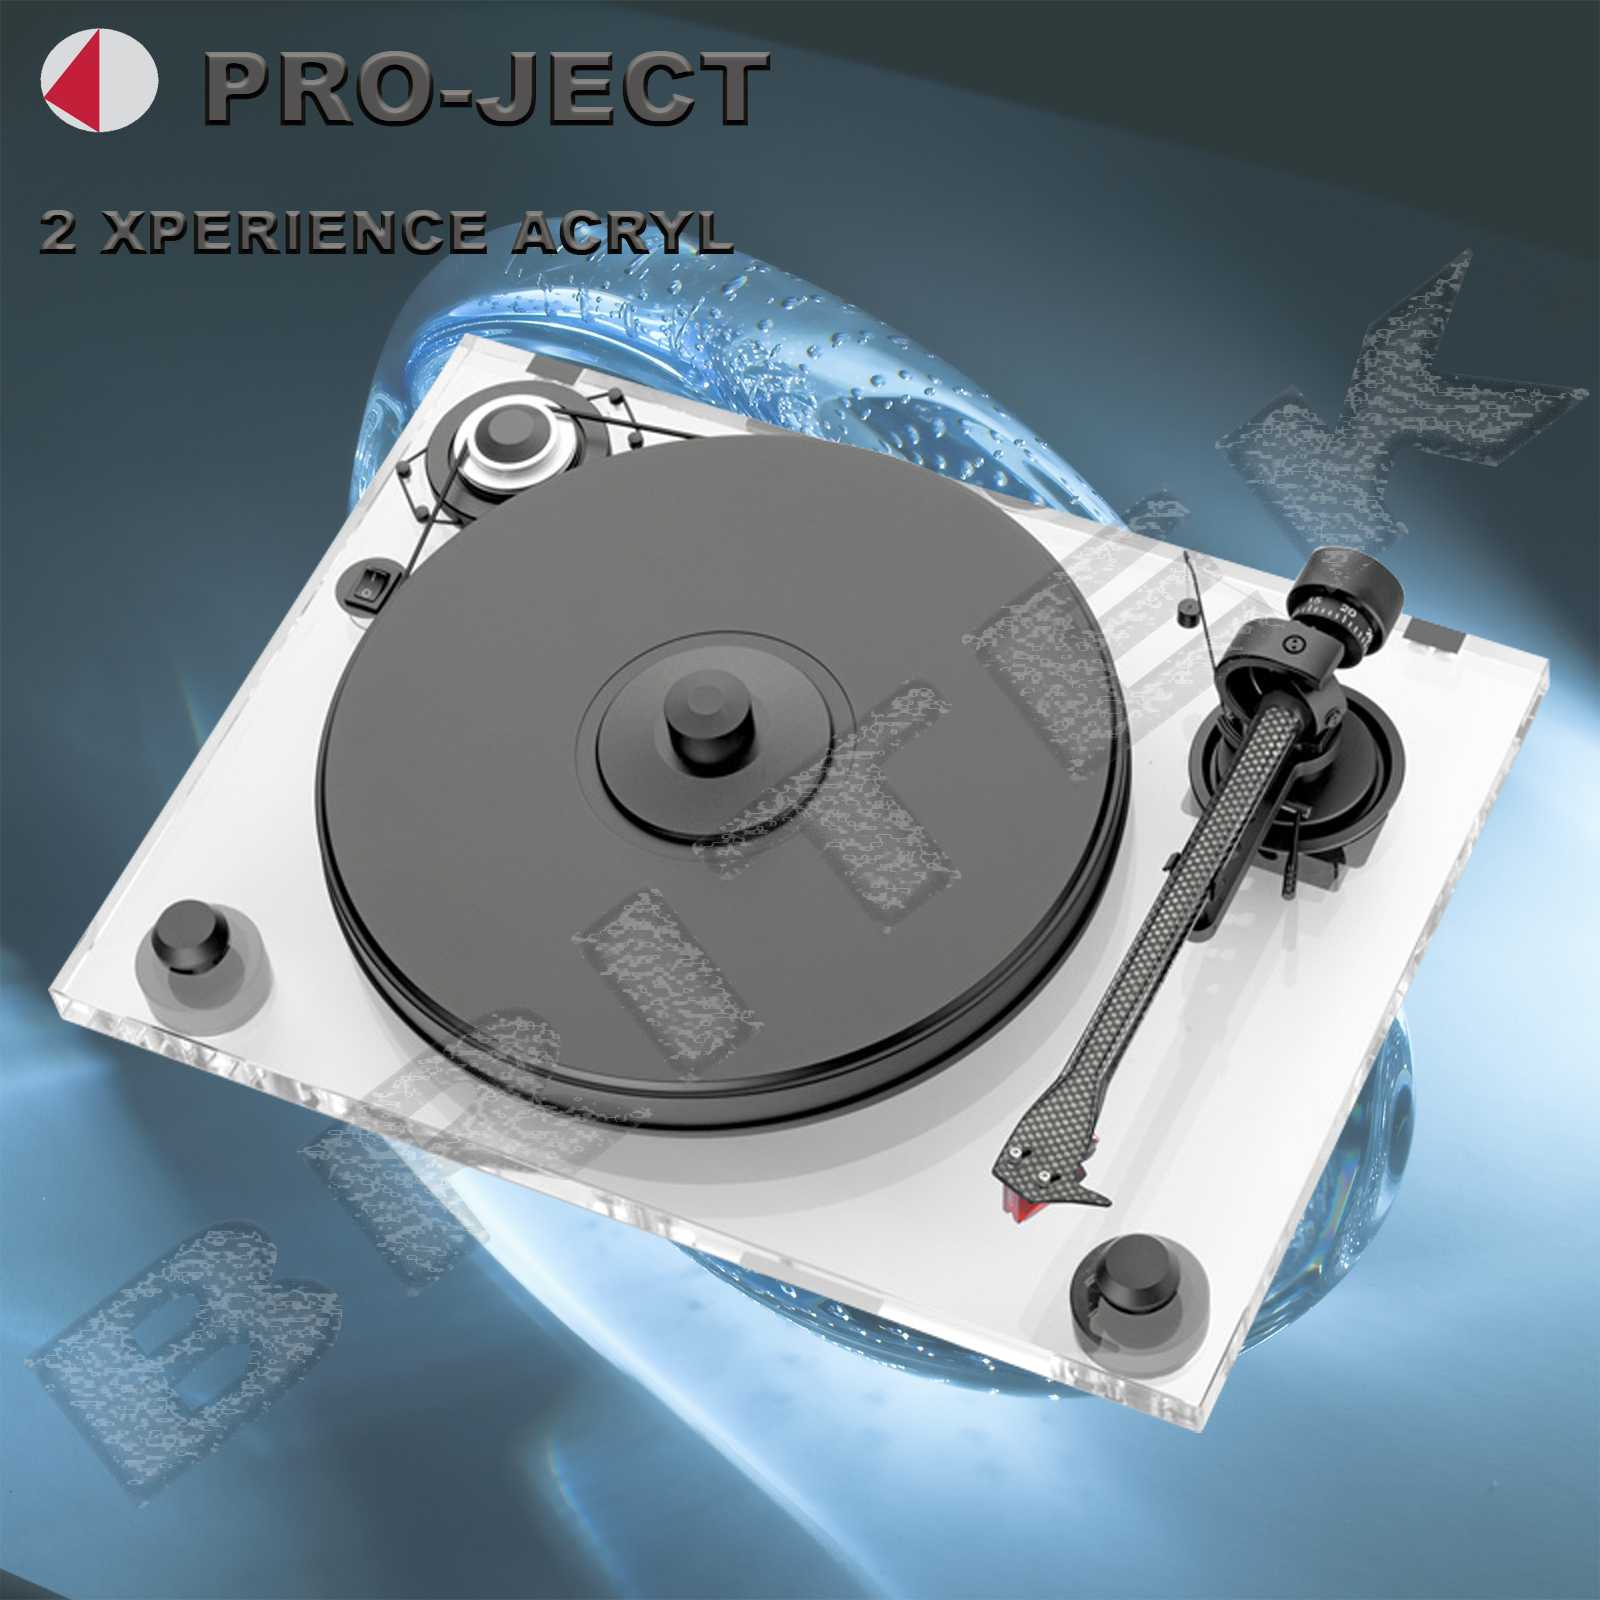 PRO-JECT 2 XPERIENCE ACRYL